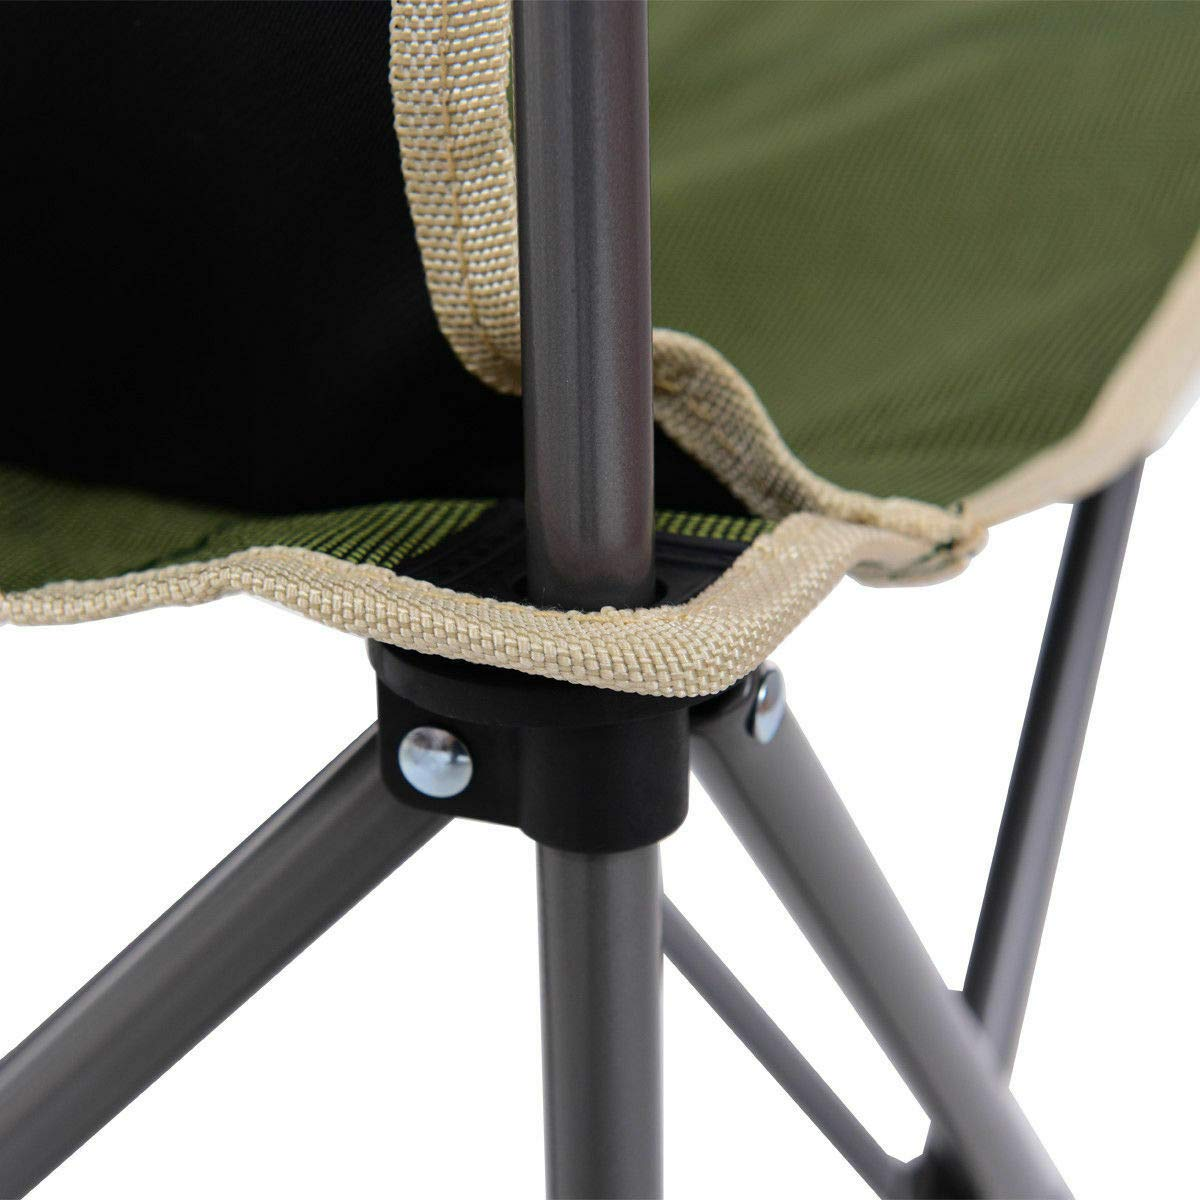 ANA Store Enjoy Barbecue Party Curl Stand Iron Stell Frame Green Oxford Portable Folding Table Chairs Set Inside Outside Camp Beach Picnic with Carrying Bag by ANA Store (Image #9)